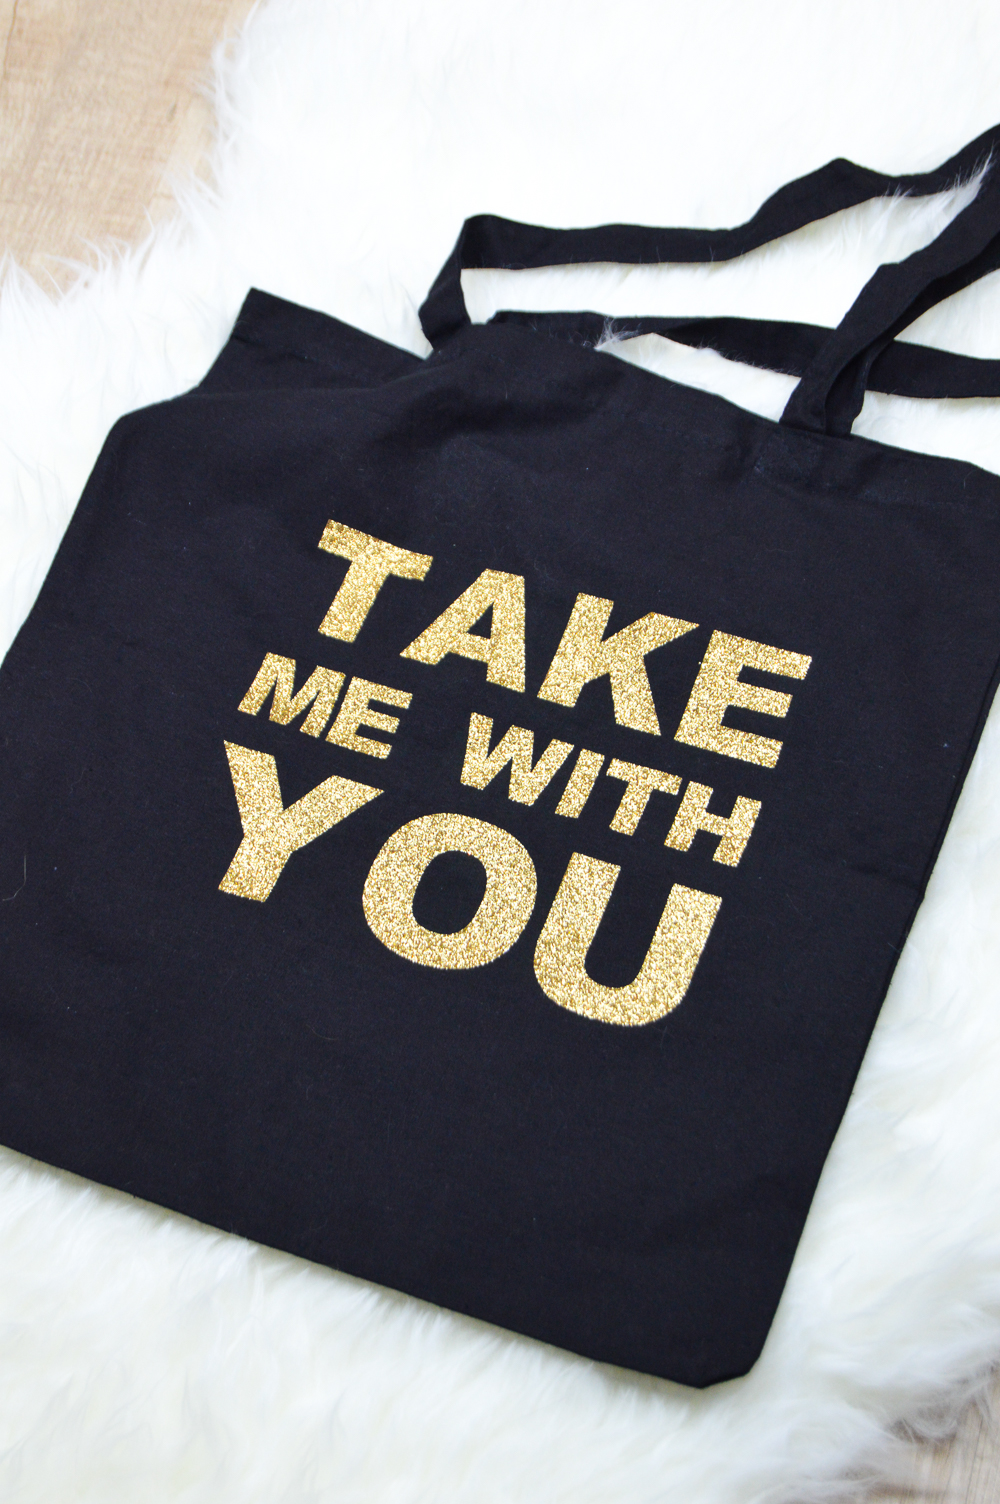 DIY Glittery Graphic Tote Bag   www.clubcrafted.com